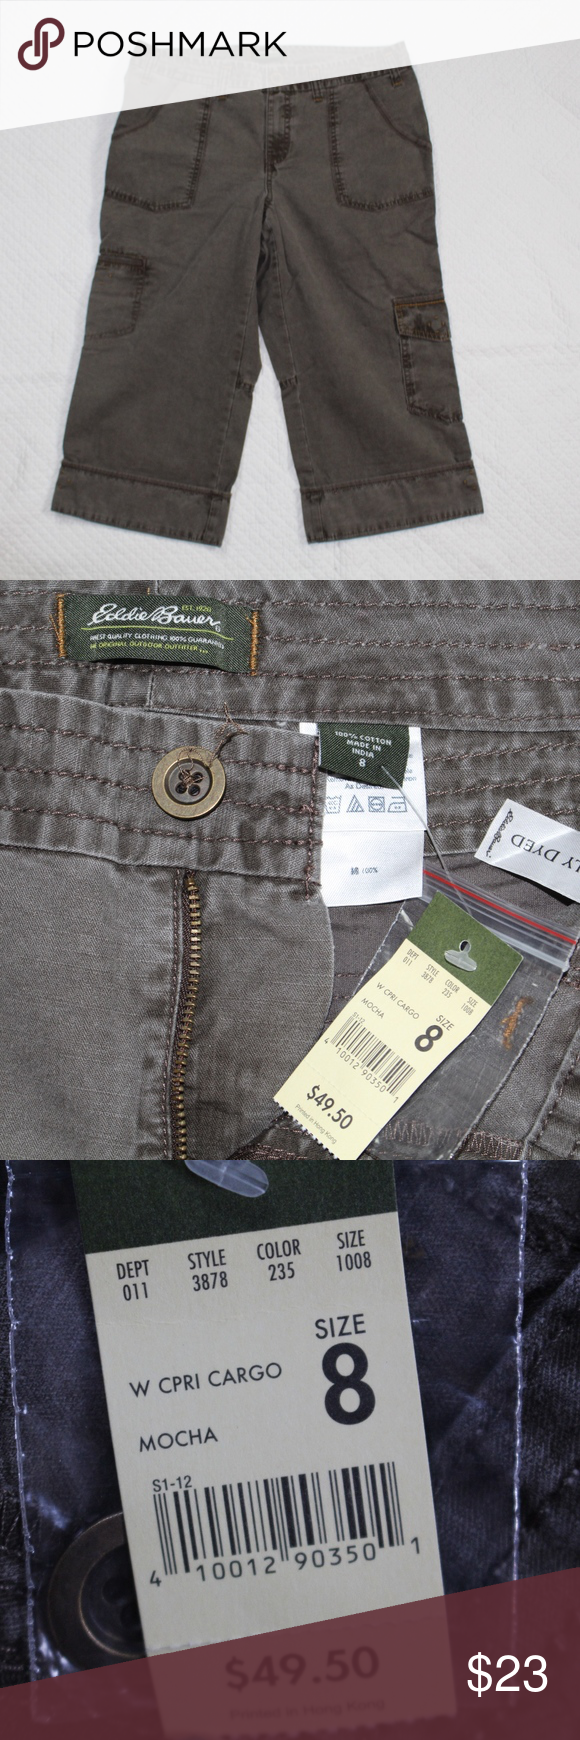 2f911a8d4d EDDIE BAUER Size 8 Capri Pants Brown Womens Cargo Brand new with tags